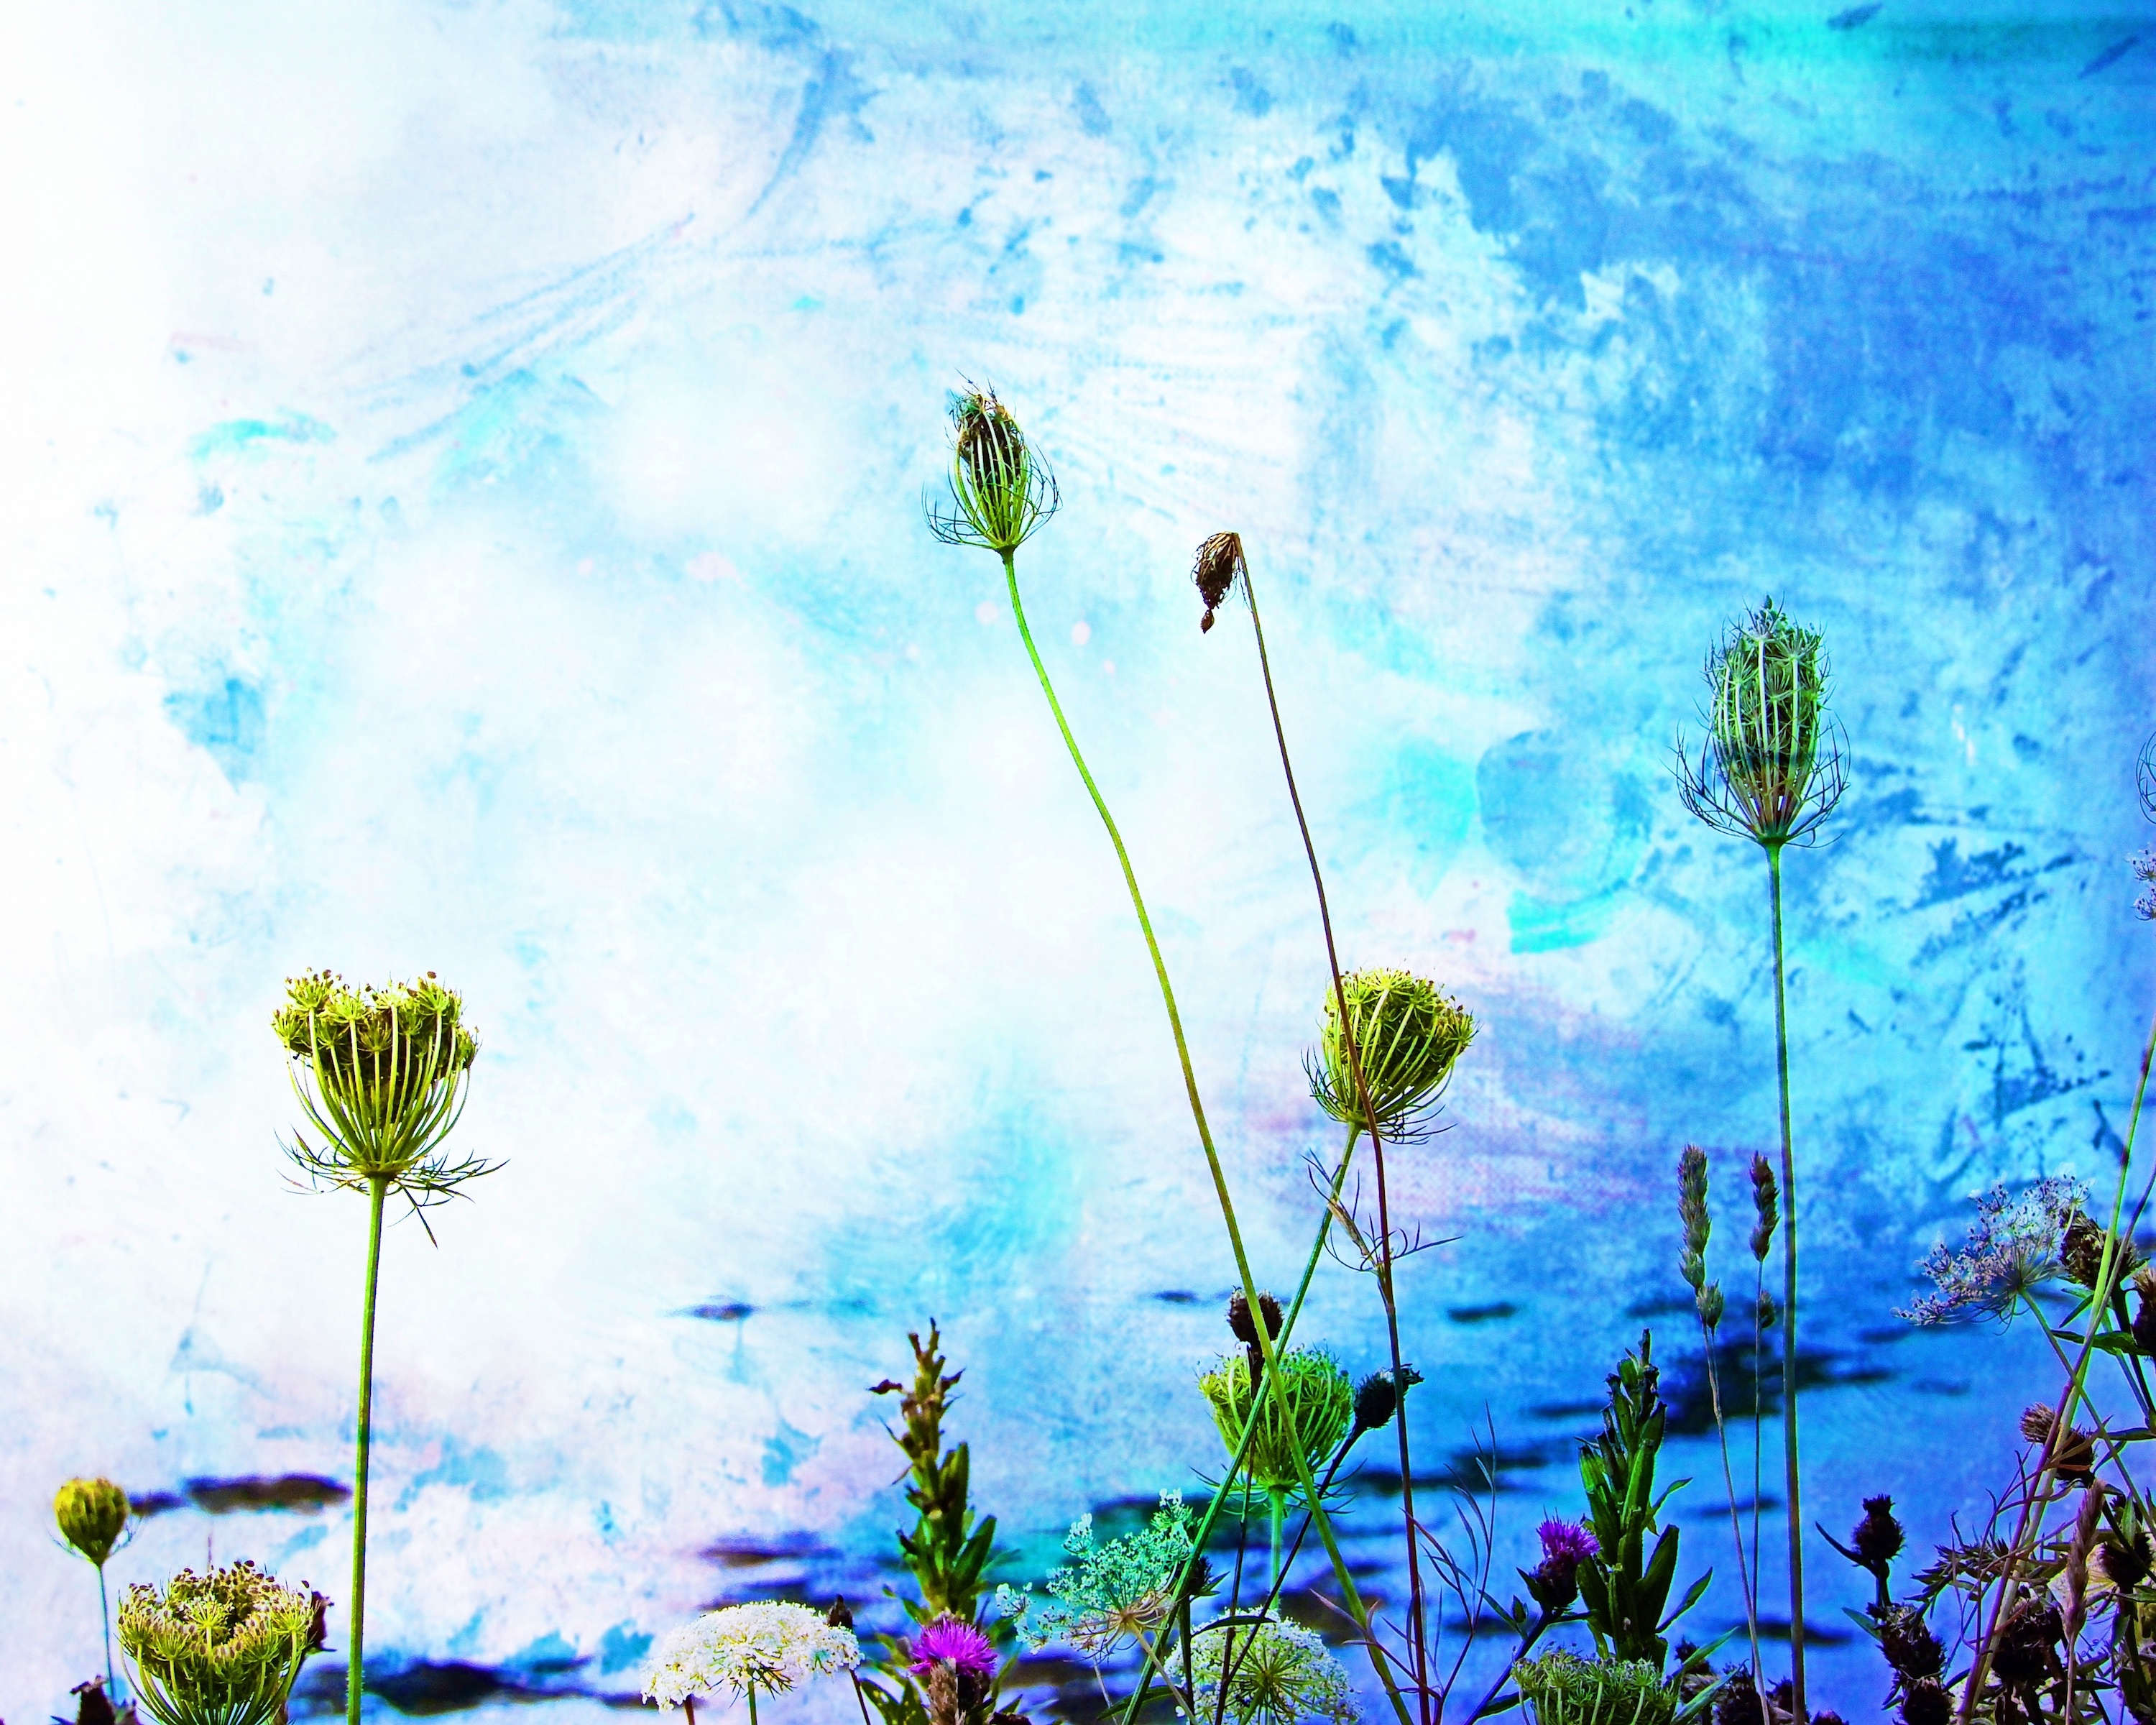 Weeds & Paint